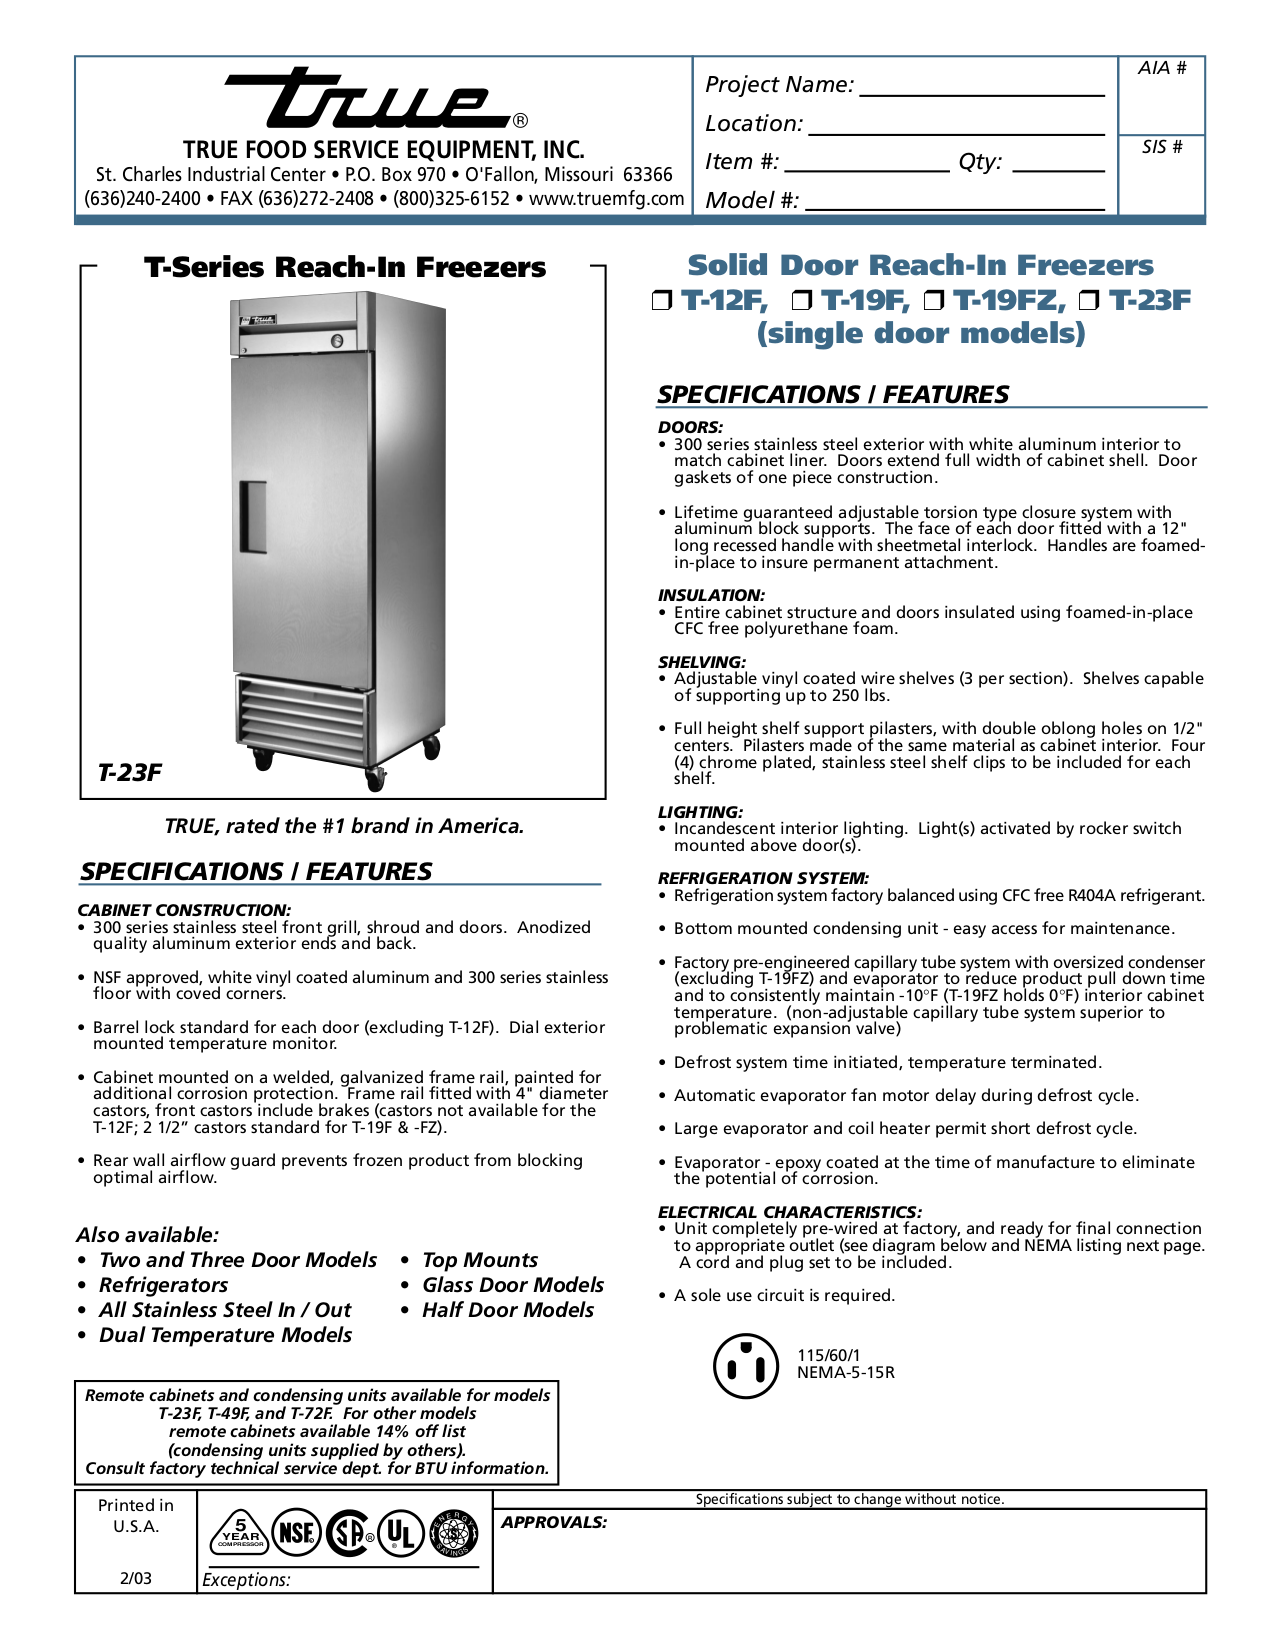 TRUET 12F.pdf 0 download free pdf for true t 23f freezer manual true freezer t-23f wiring diagram at webbmarketing.co